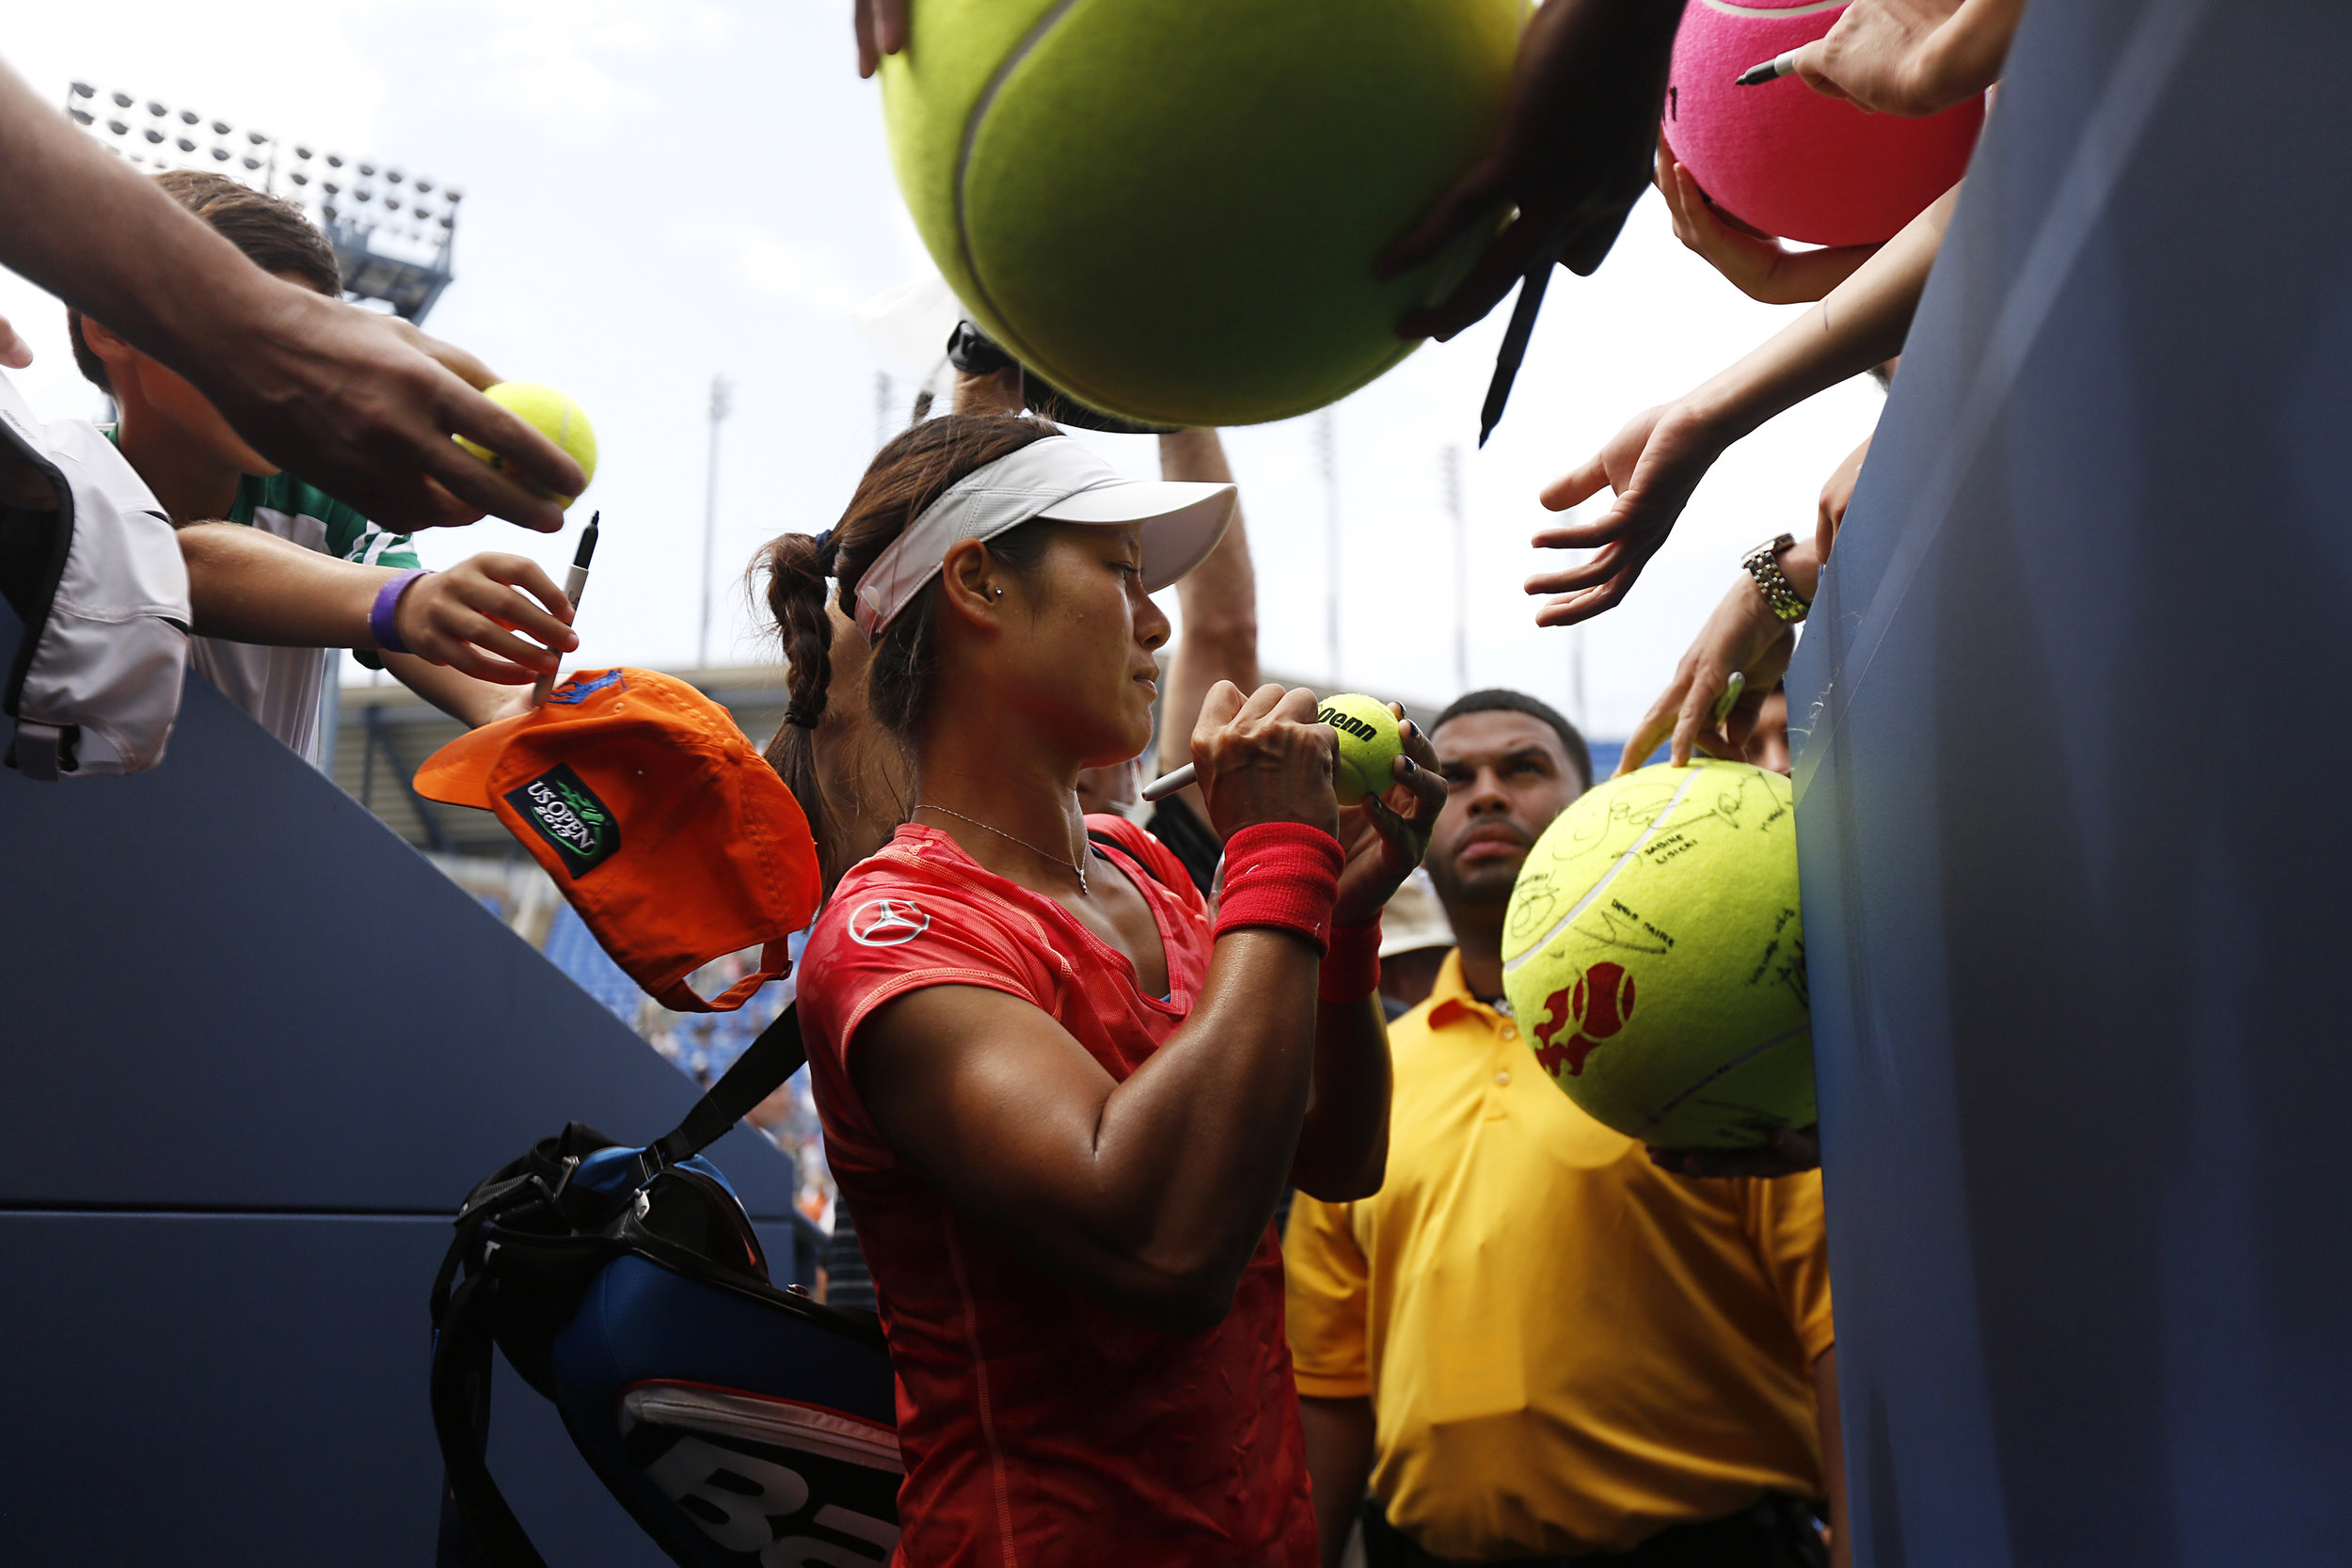 Na Li signs tennis balls after beating Olga Govortsova 6-2, 6-2. in the women singles first round at the U.S. Open tennis tournament held at Arthur Ashe Stadium in Queens, Ny.